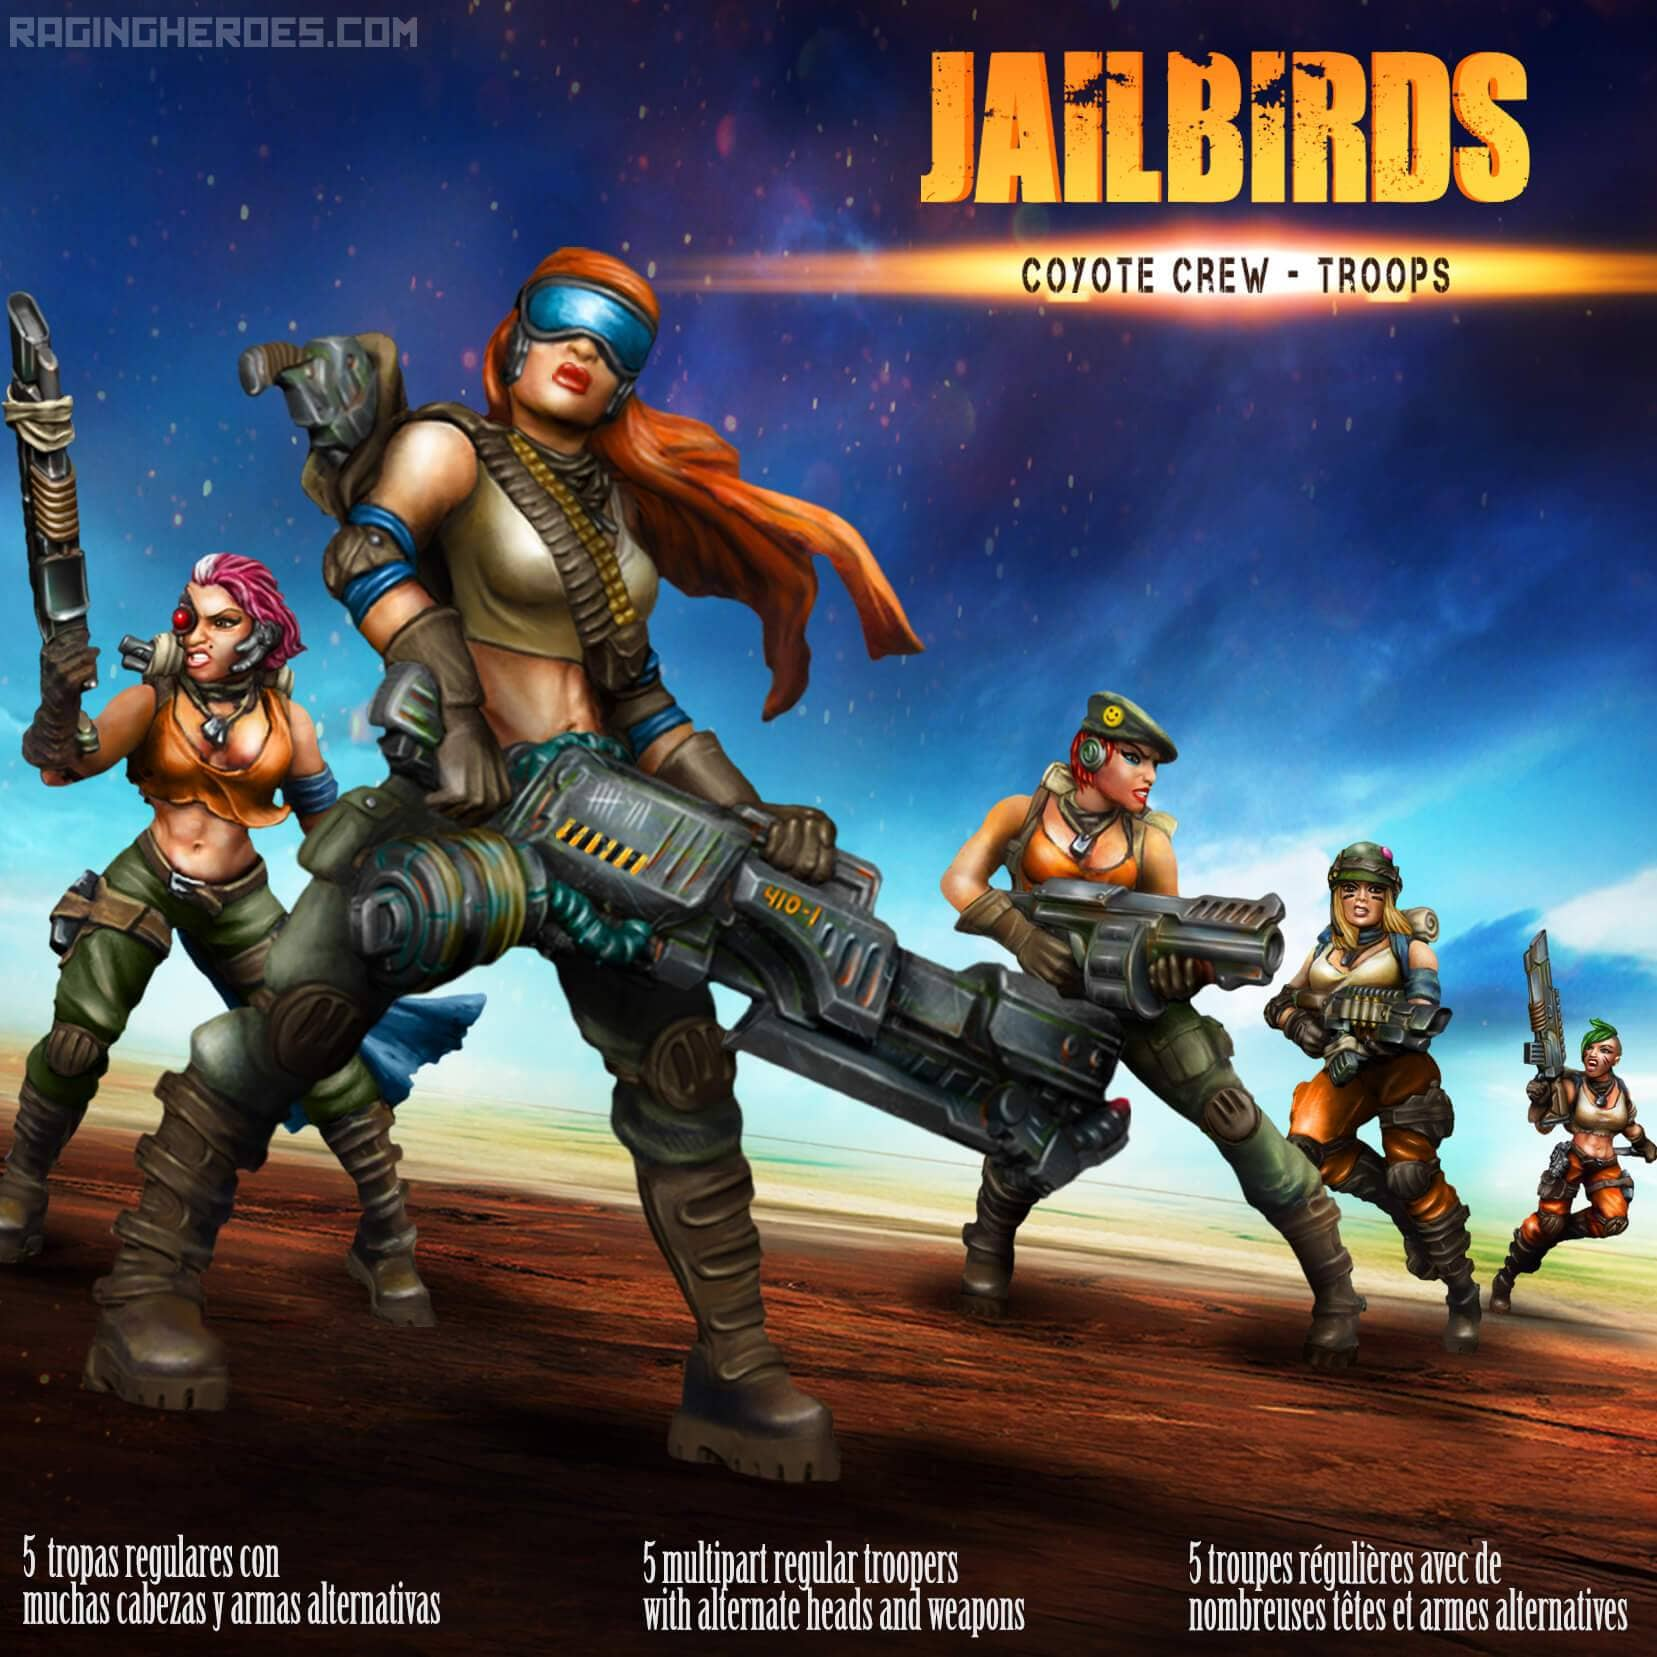 Jailbirds - Coyote Crew - Troops - Raging Heroes